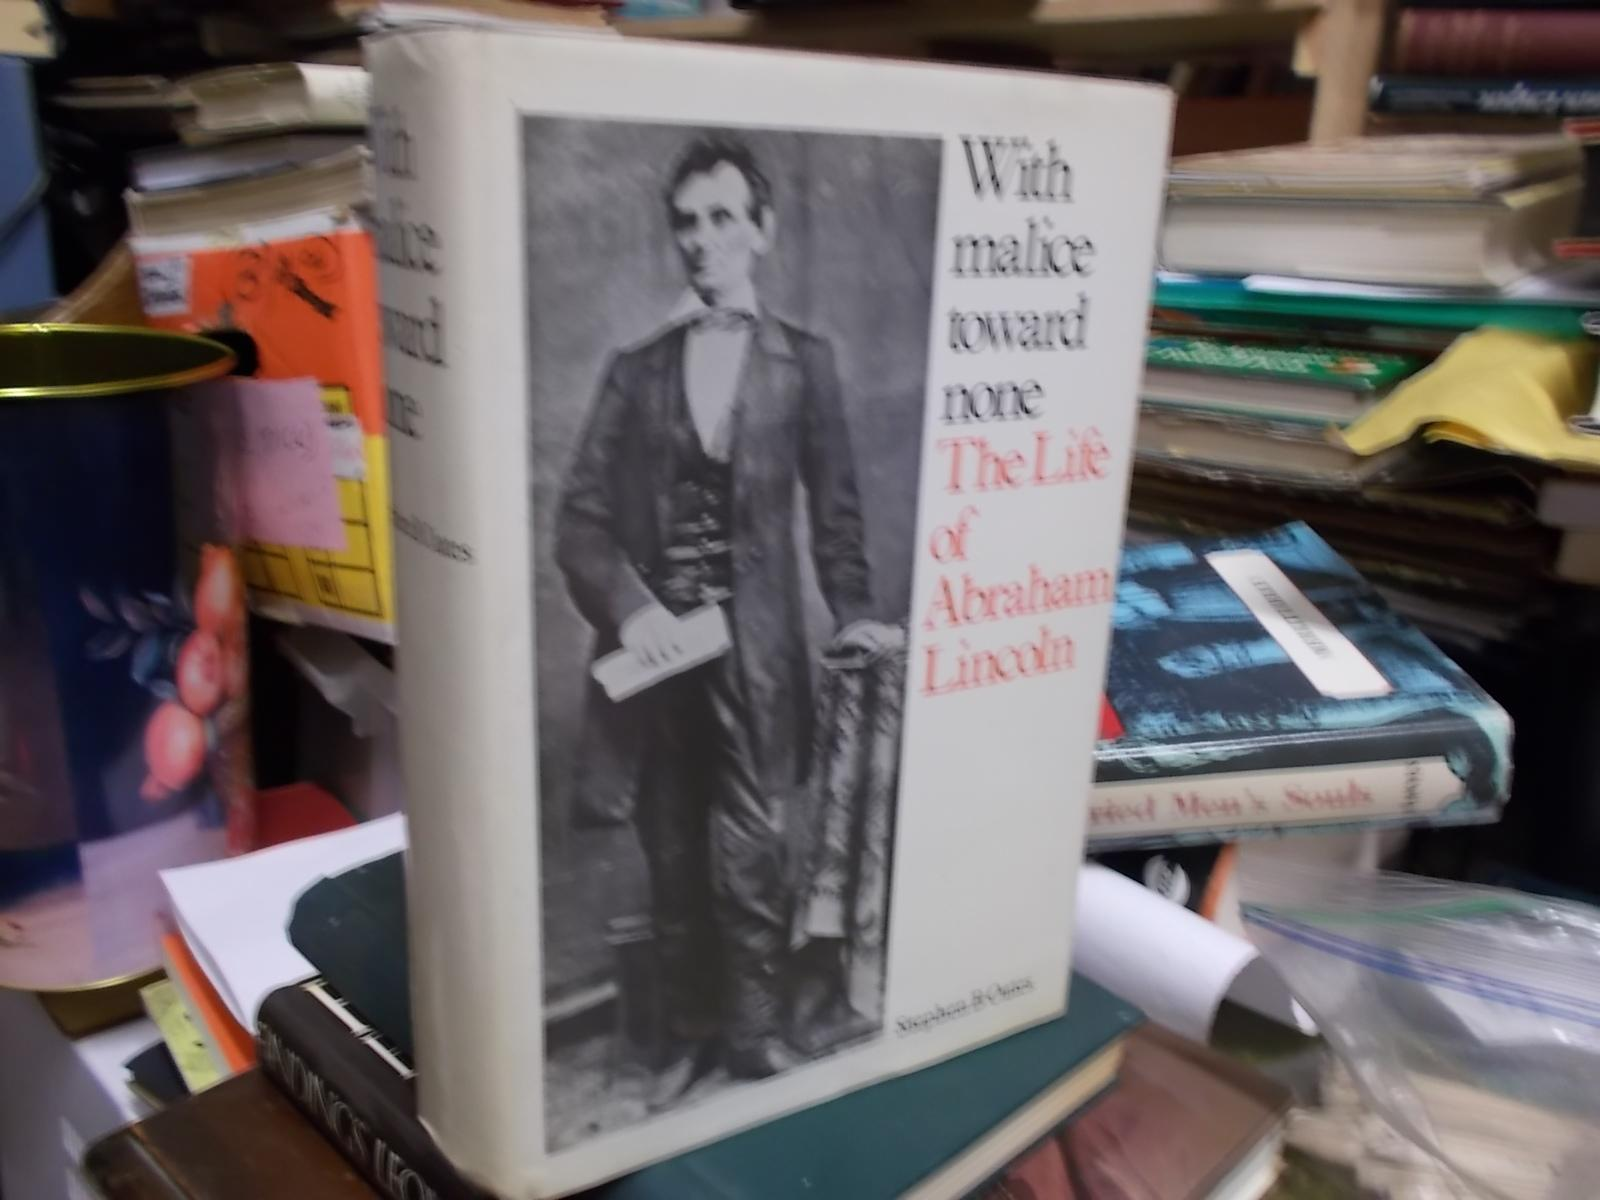 With Malice Toward None: Life of Abraham Lincoln